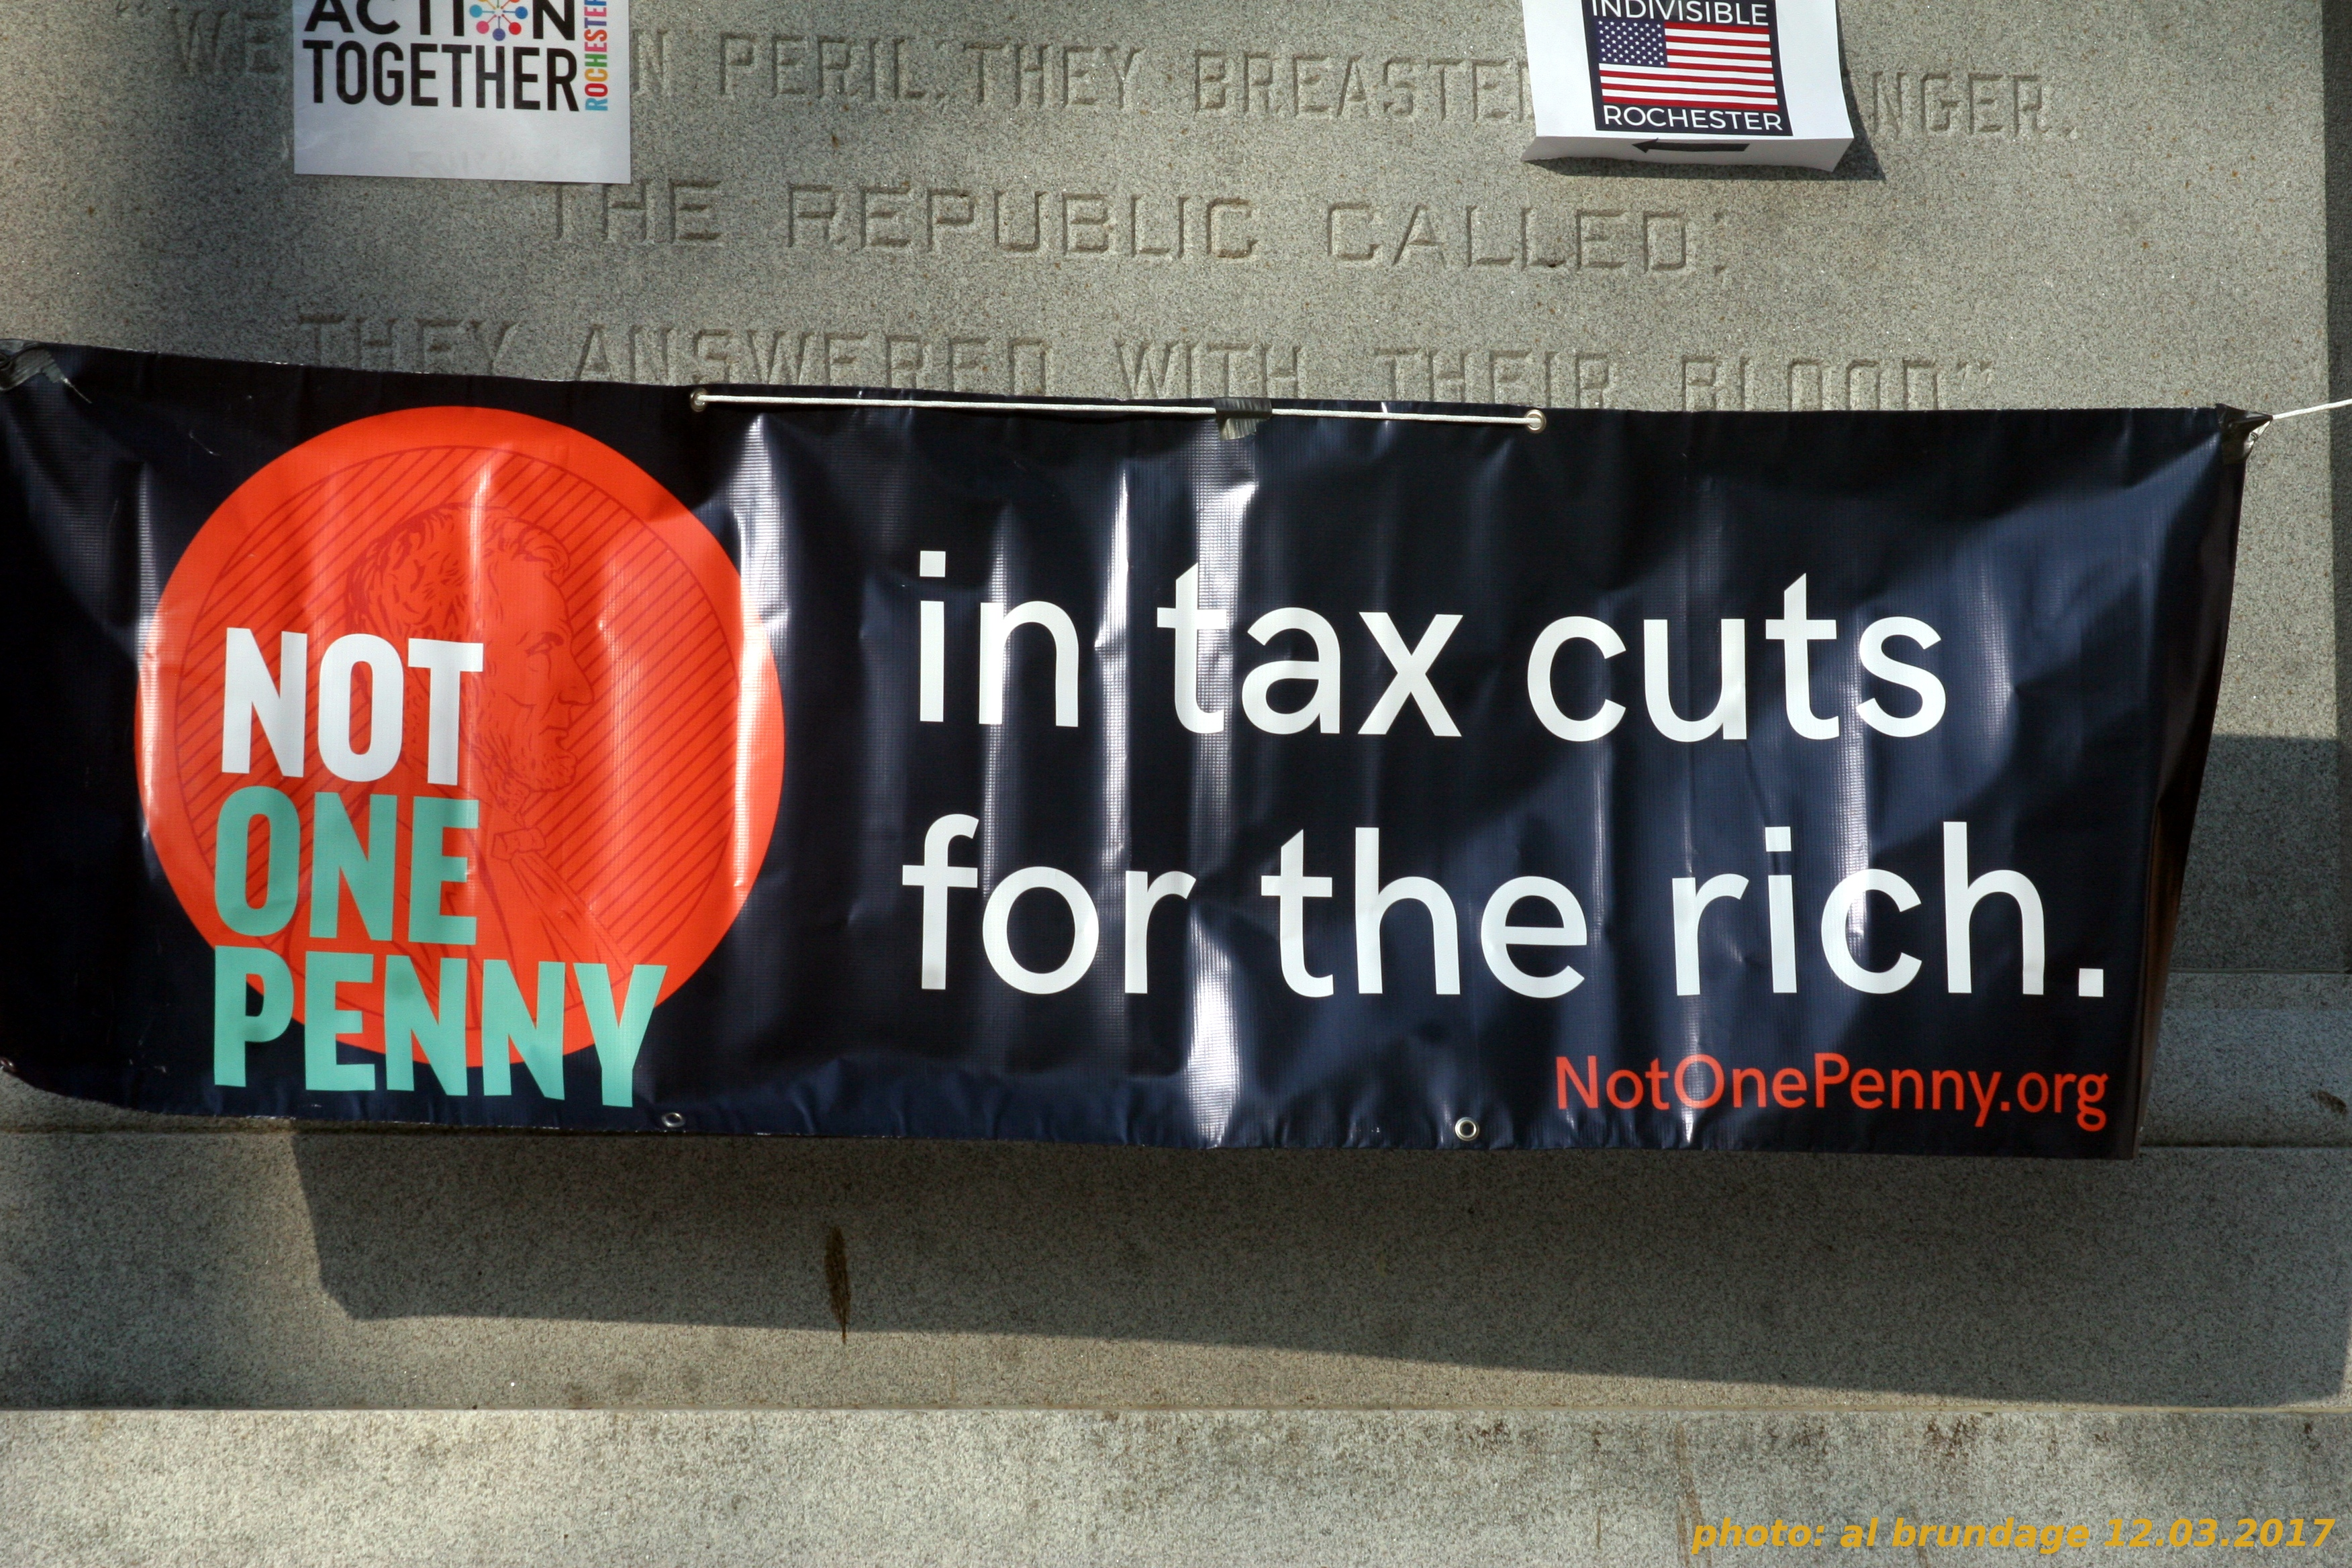 NOT ONE PENNY in tax cuts for the rich!